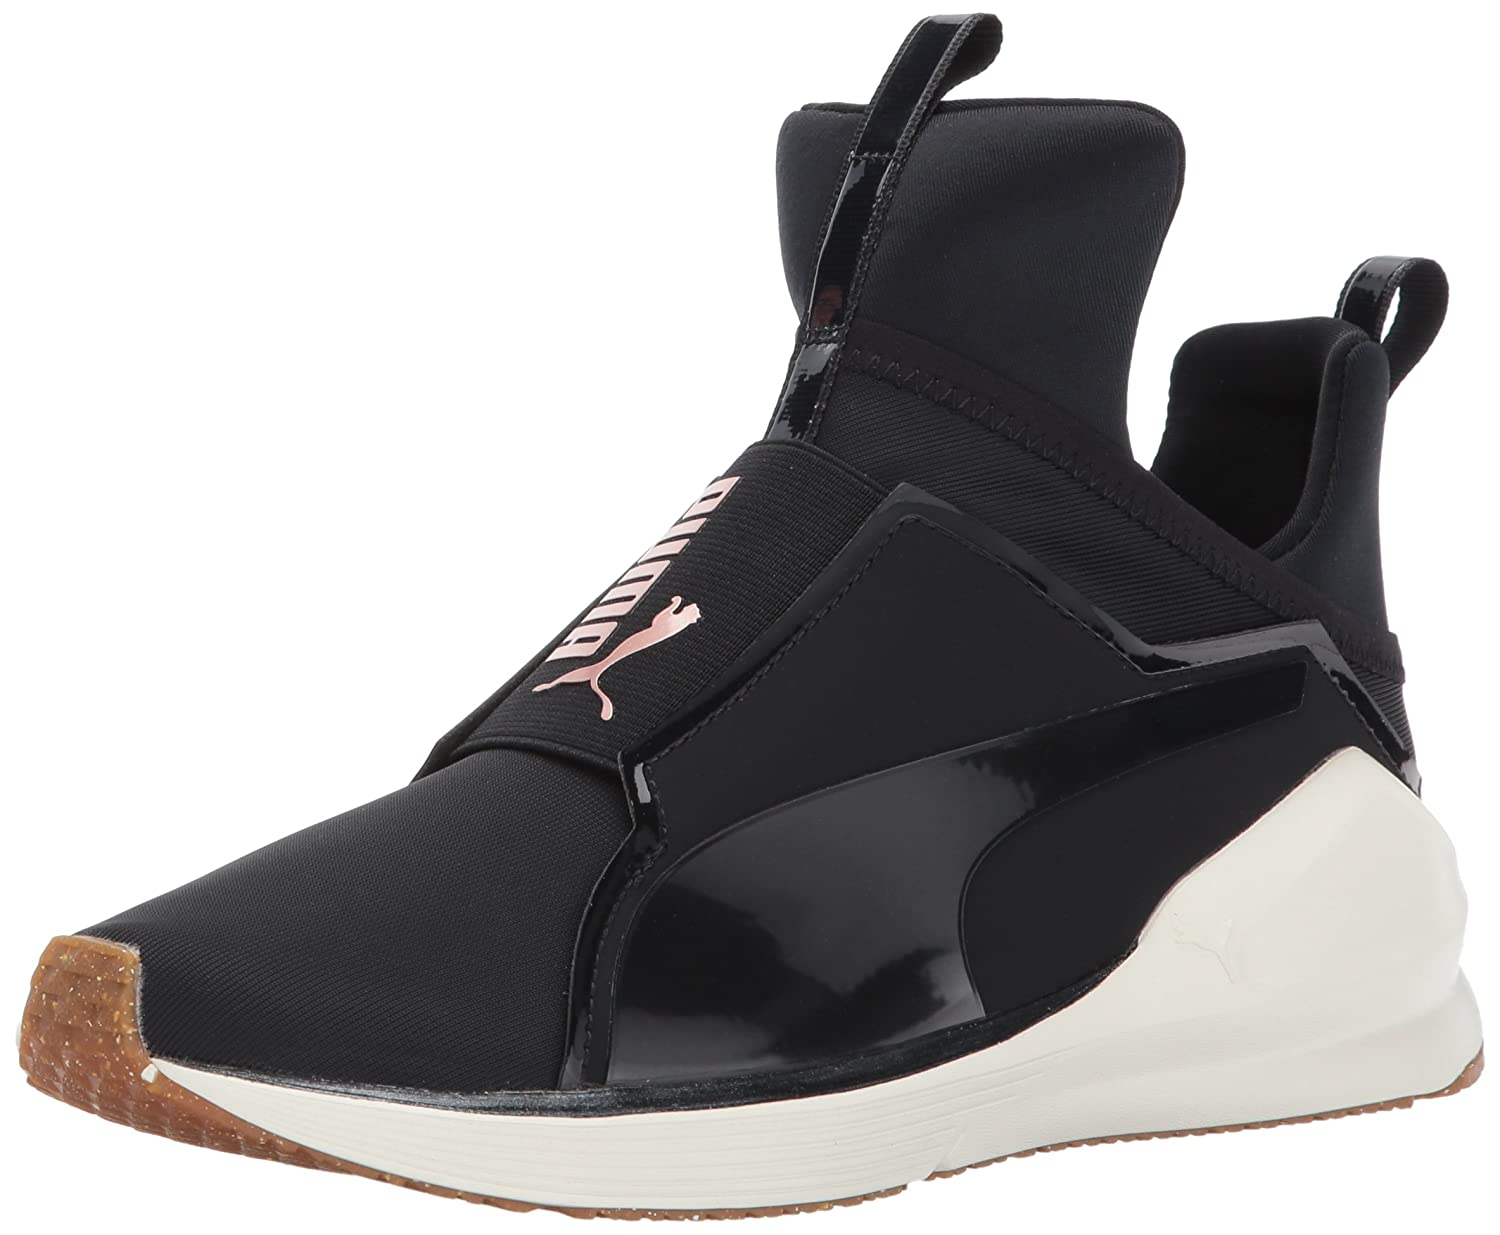 PUMA Women's Fierce VR Wn Sneaker B01MZ0EYUO 11 B(M) US|Black